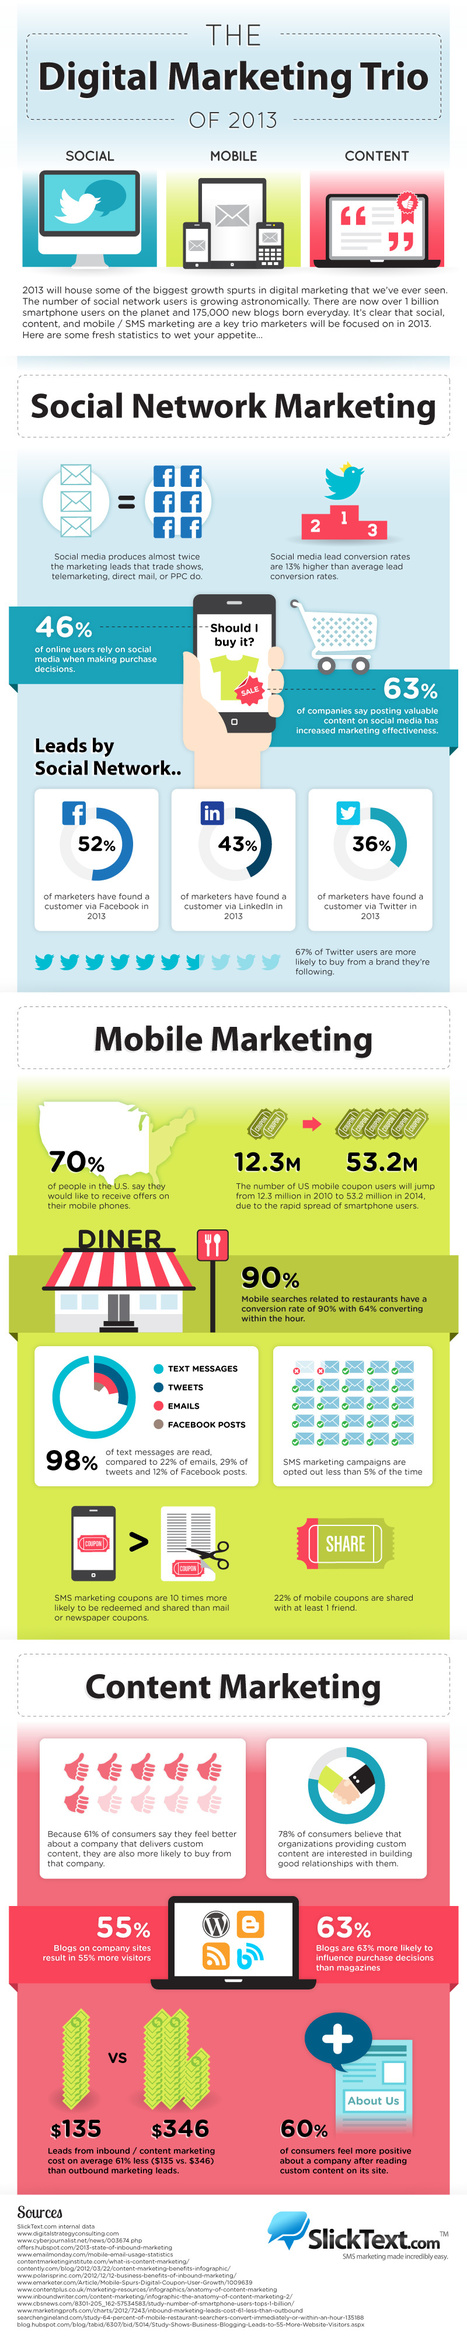 The Digital Marketing Trio Of 2013 [Infographic] | iEduc | Scoop.it